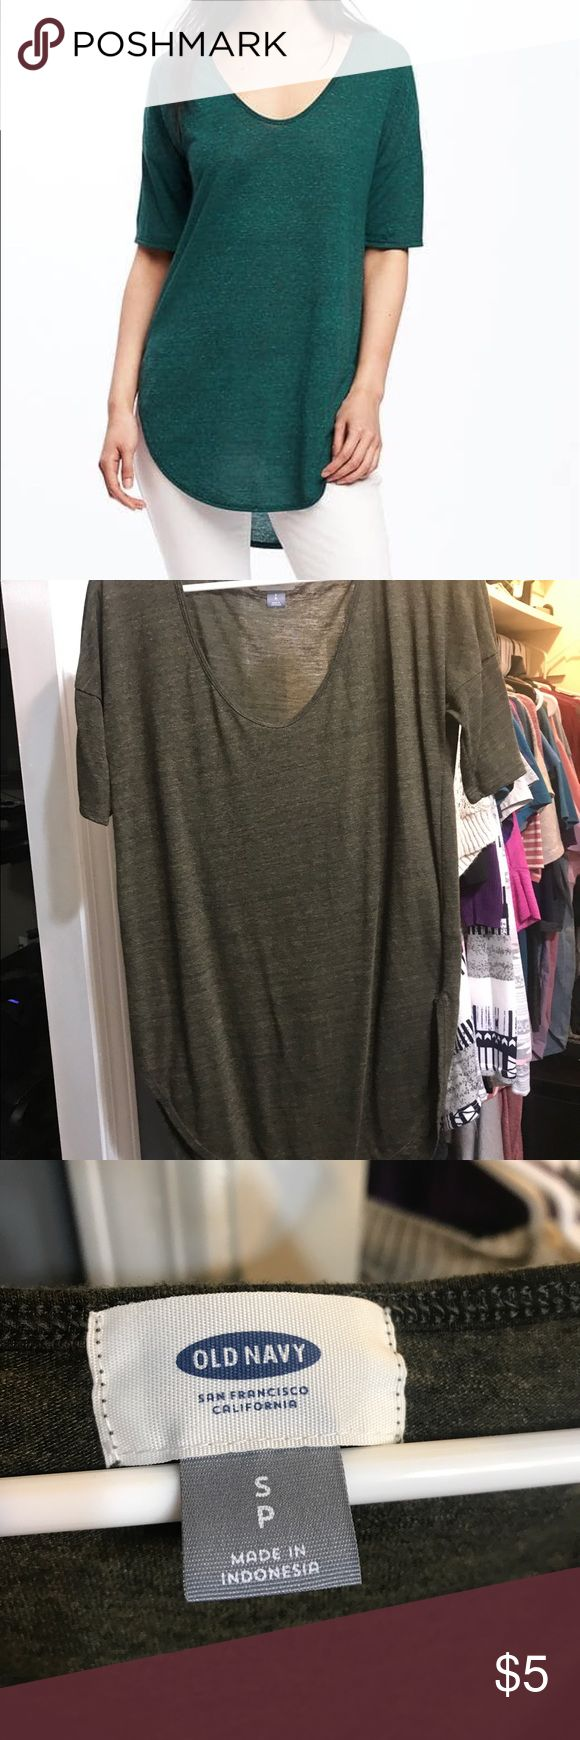 DARK OLIVE Old Navy tunic top Stock picture used to show fit only. This is a DARK OLIVE tunic top from Old Navy. So light and airy while still covering your lady parts when wearing leggings! Old Navy Tops Tunics